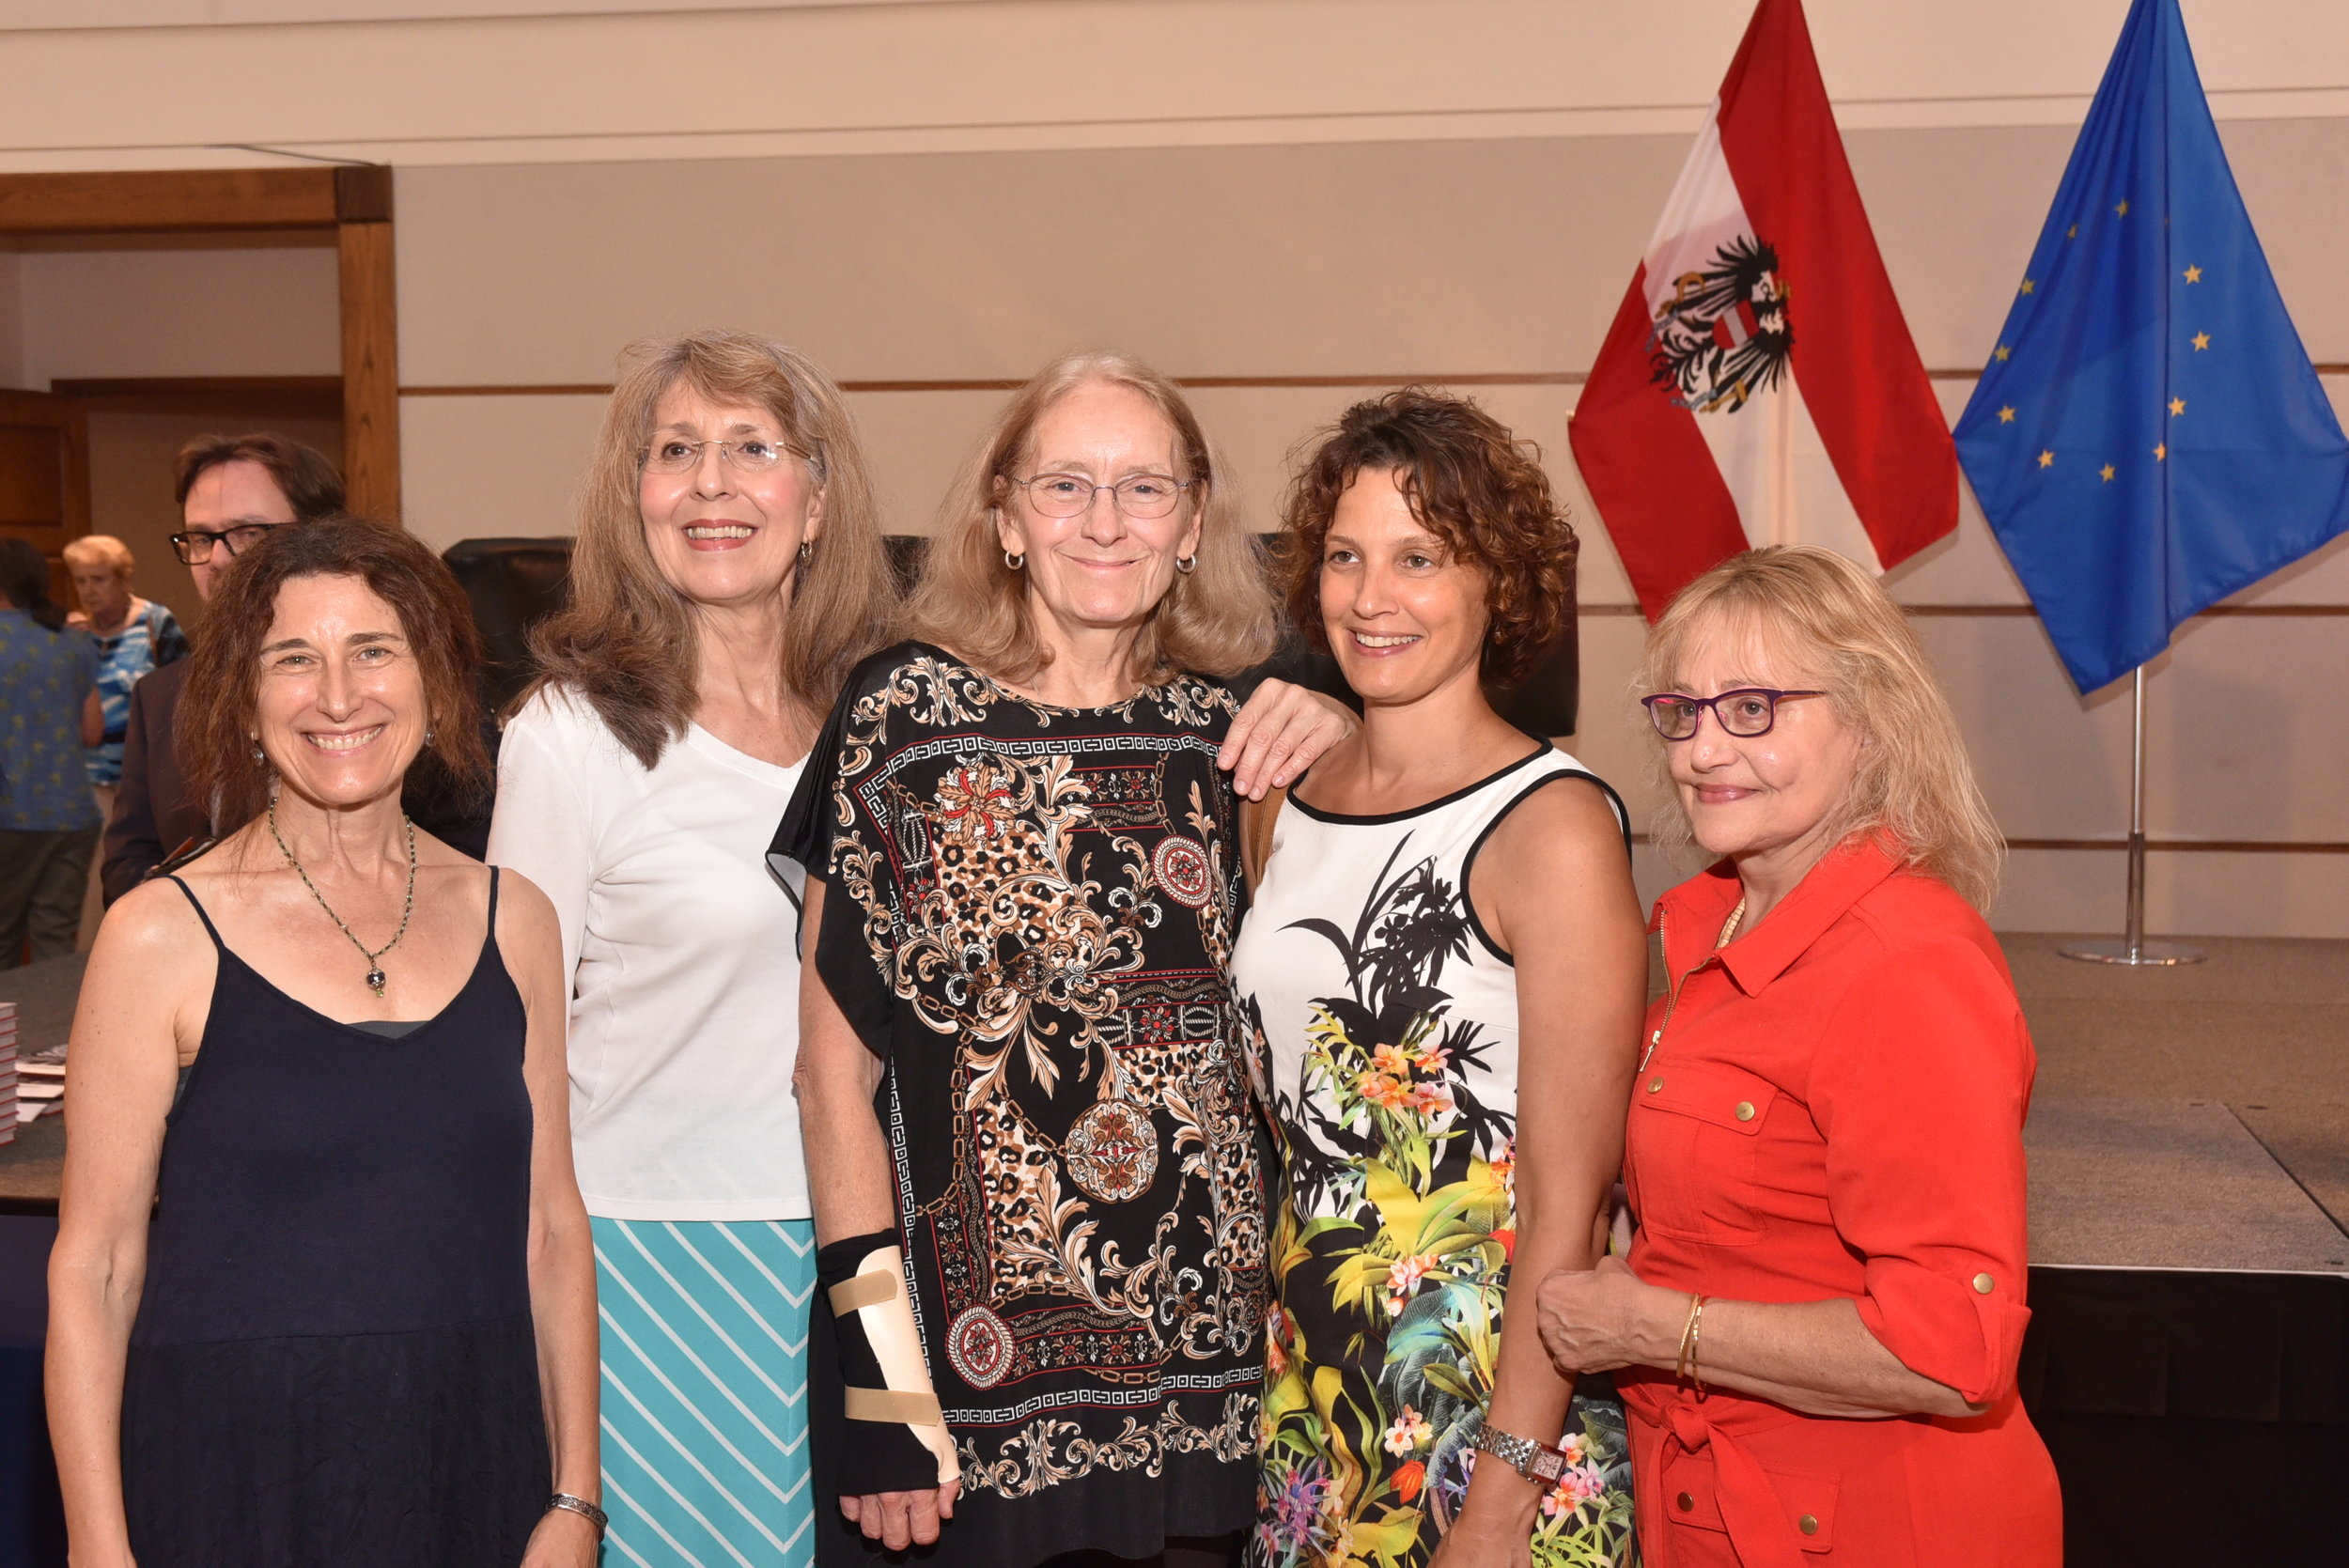 Eva Schöfer (second from right), Director of the Austrian Cultural Forum Washington, with guests.   Photo: Peter Alunans